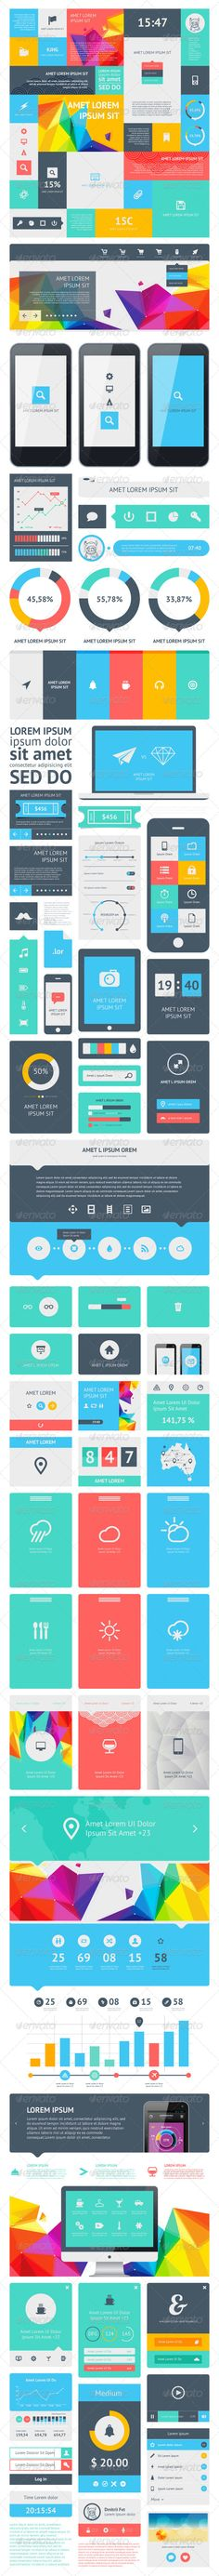 Vectors - UI Set Components Featuring Flat Design | GraphicRiver - It's a flat flat world out there